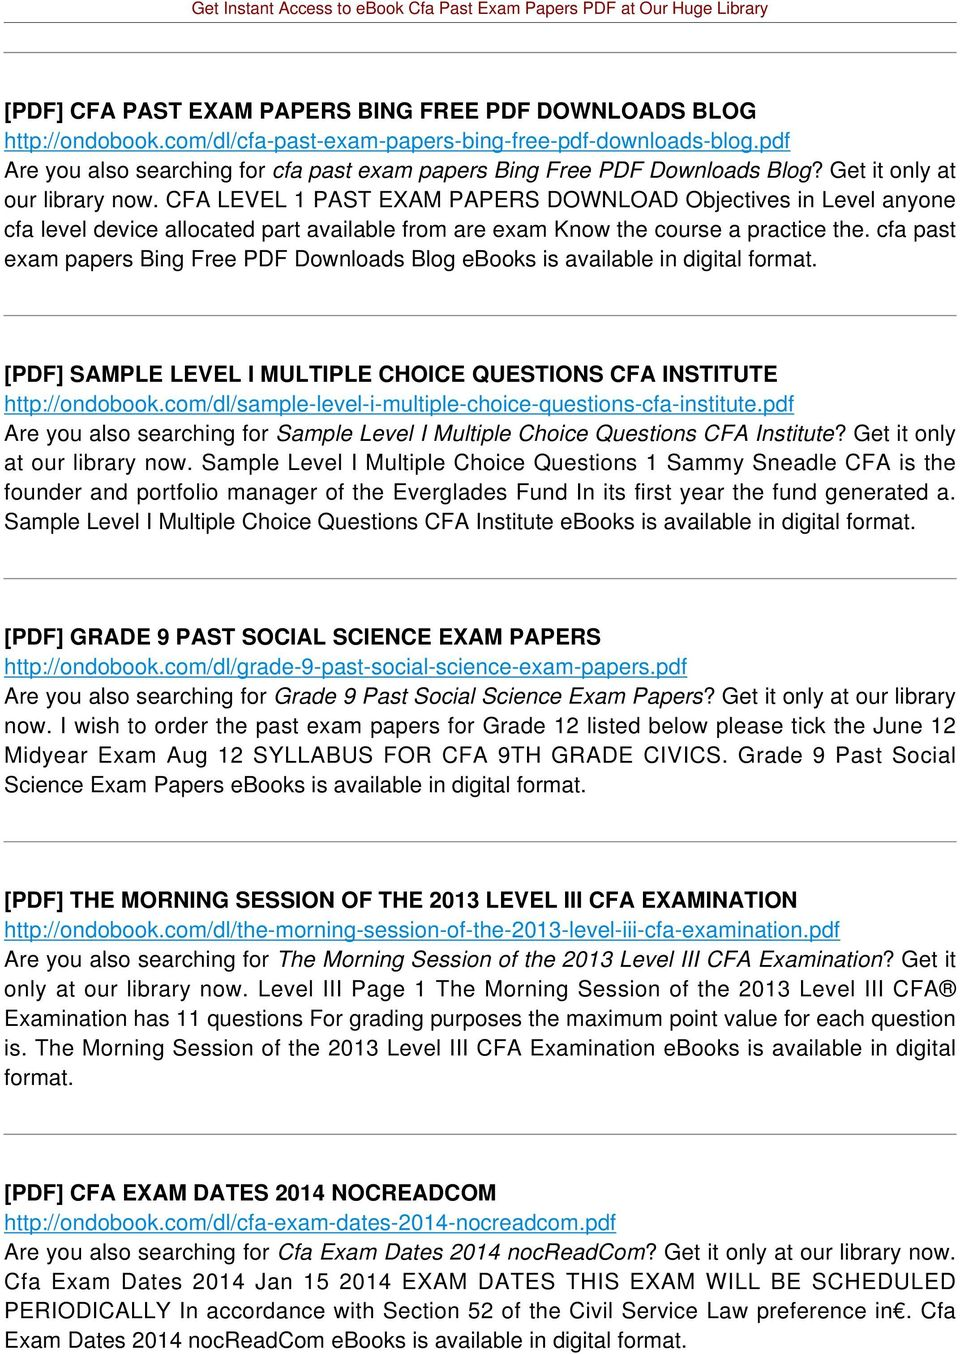 CFA LEVEL 1 PAST EXAM PAPERS DOWNLOAD Objectives in Level anyone cfa level device allocated part available from are exam Know the course a practice the.